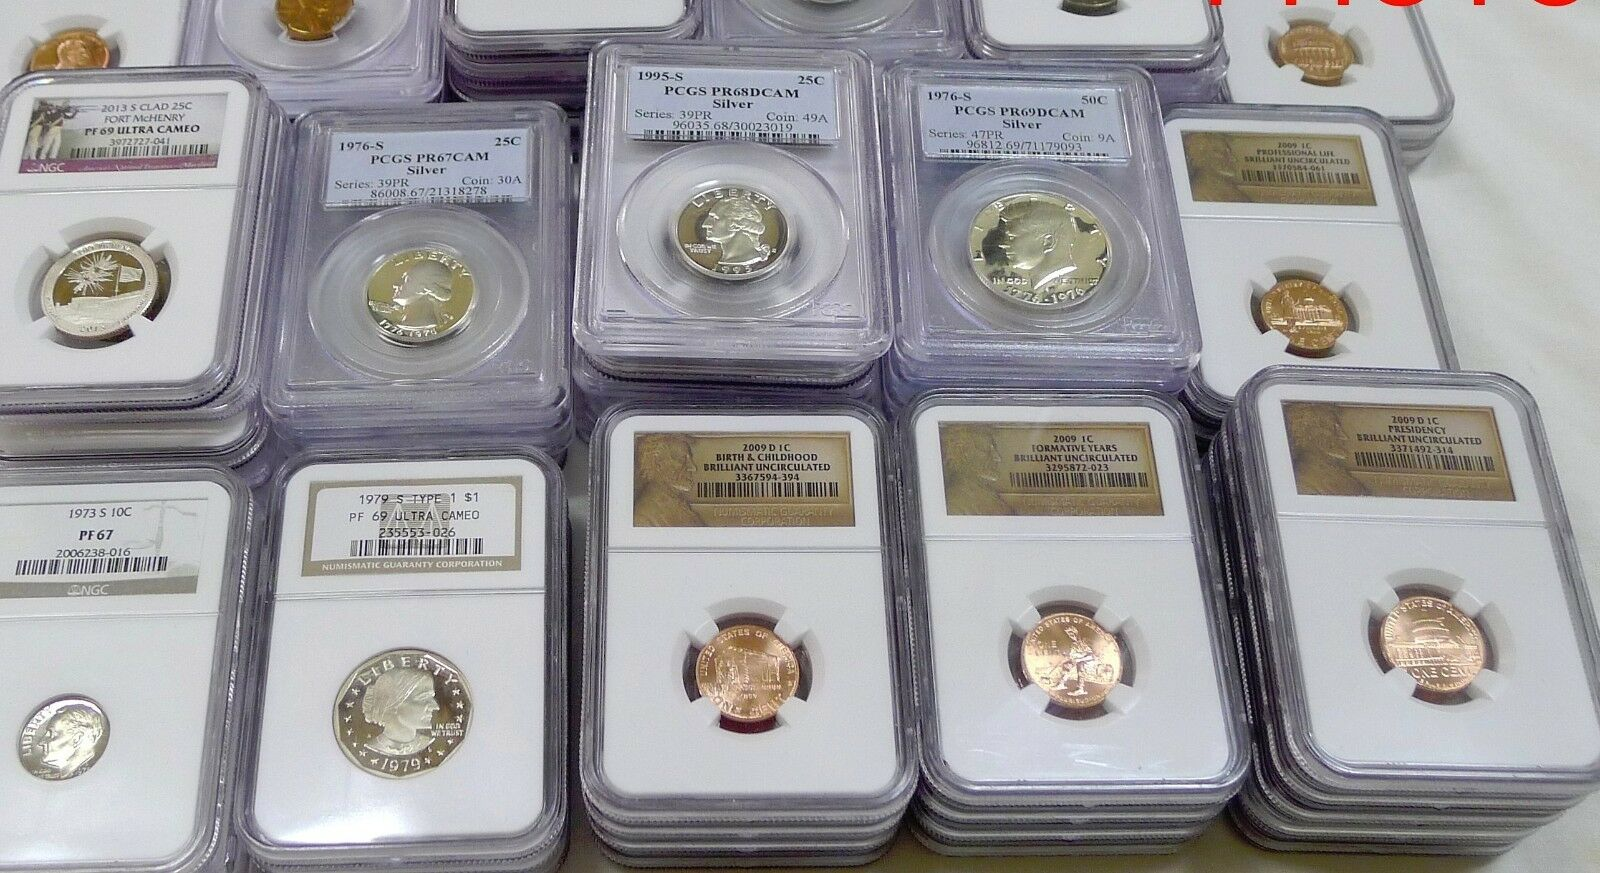 GIGANTIC 100 COIN ESTATE LOT! NGC,PCGS,GOLD,SILVER,CURRENCY,ROLLS,ANTIQUE,MORE!